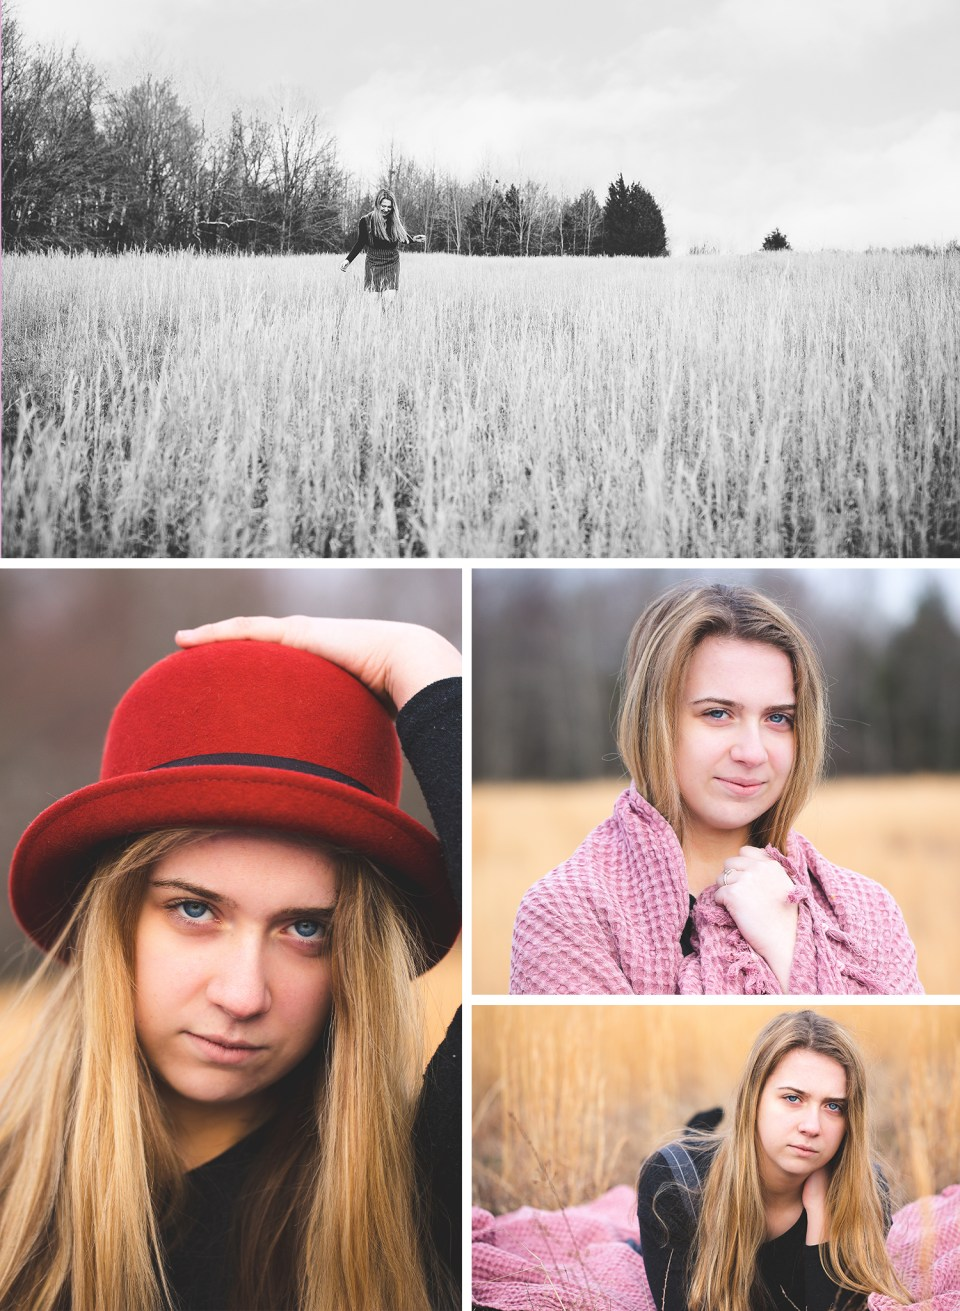 shelby_andal_photography_robertson_county_senior_photographer_springfield_tennessee_girl_in_field